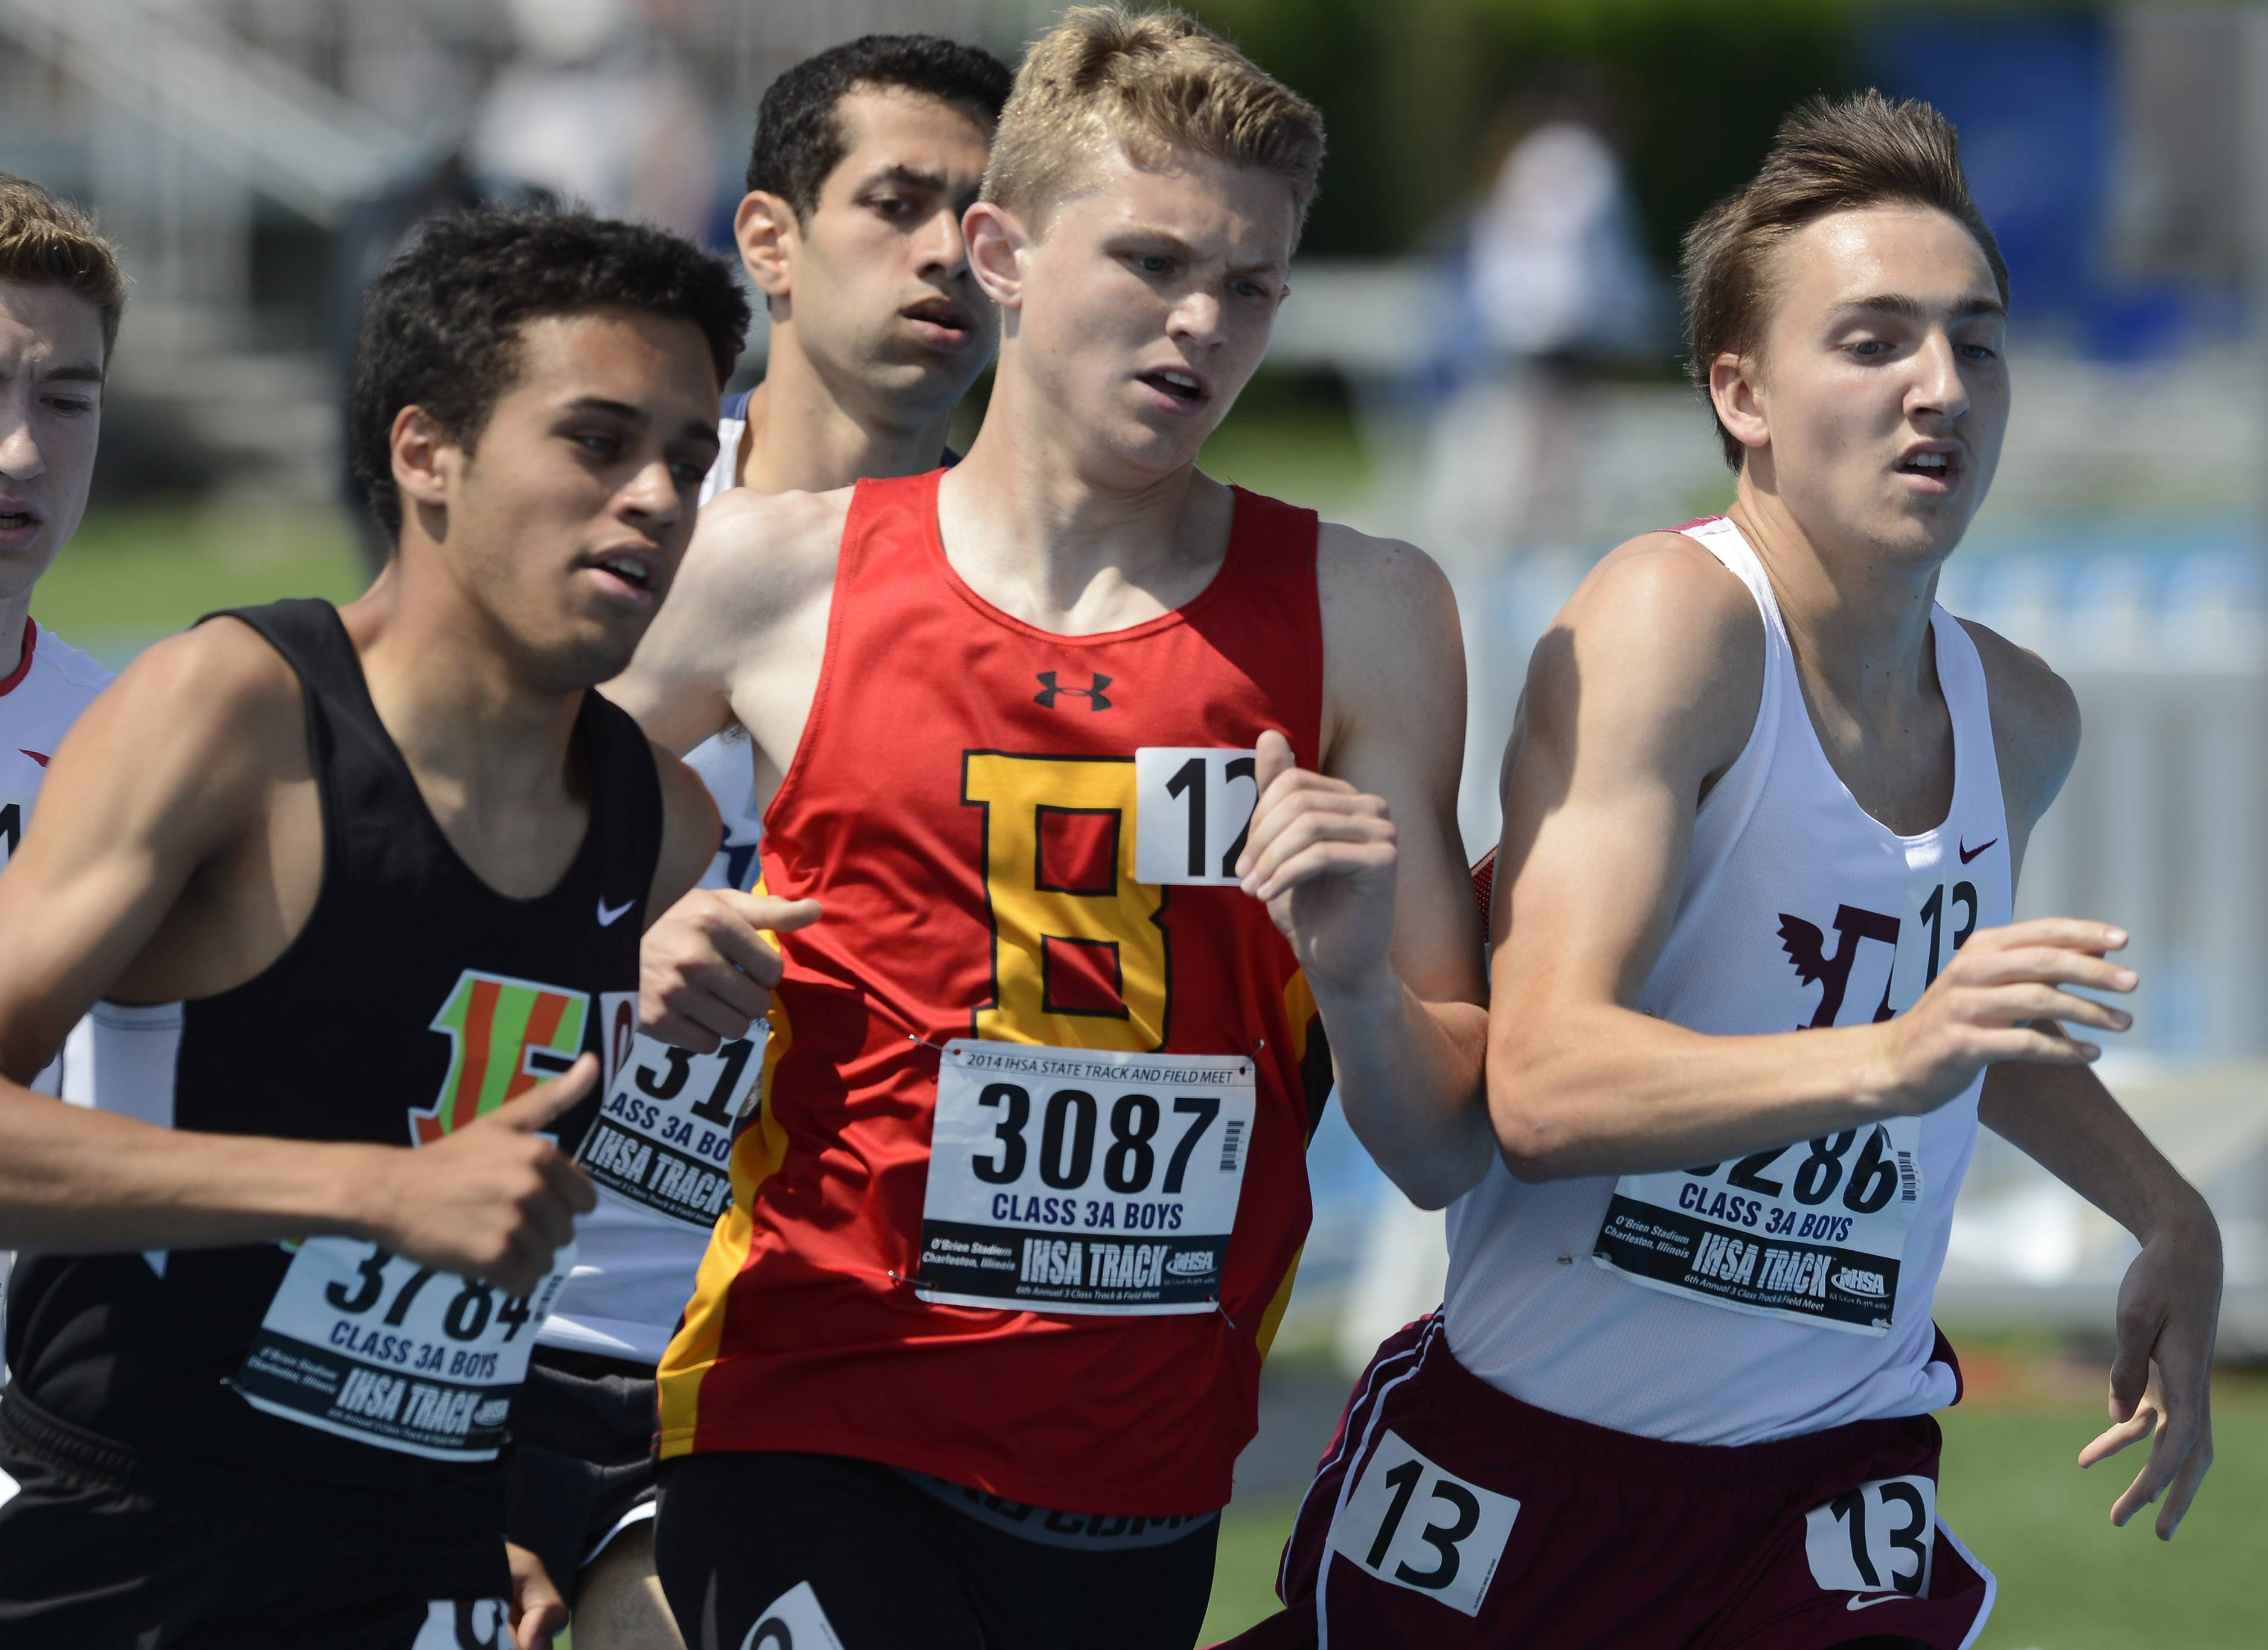 Batavia's Ryan Wieties gets squeezed in the pack in the 800-meter run during the Class 3A boys track and field state preliminaries in Charleston on Friday.